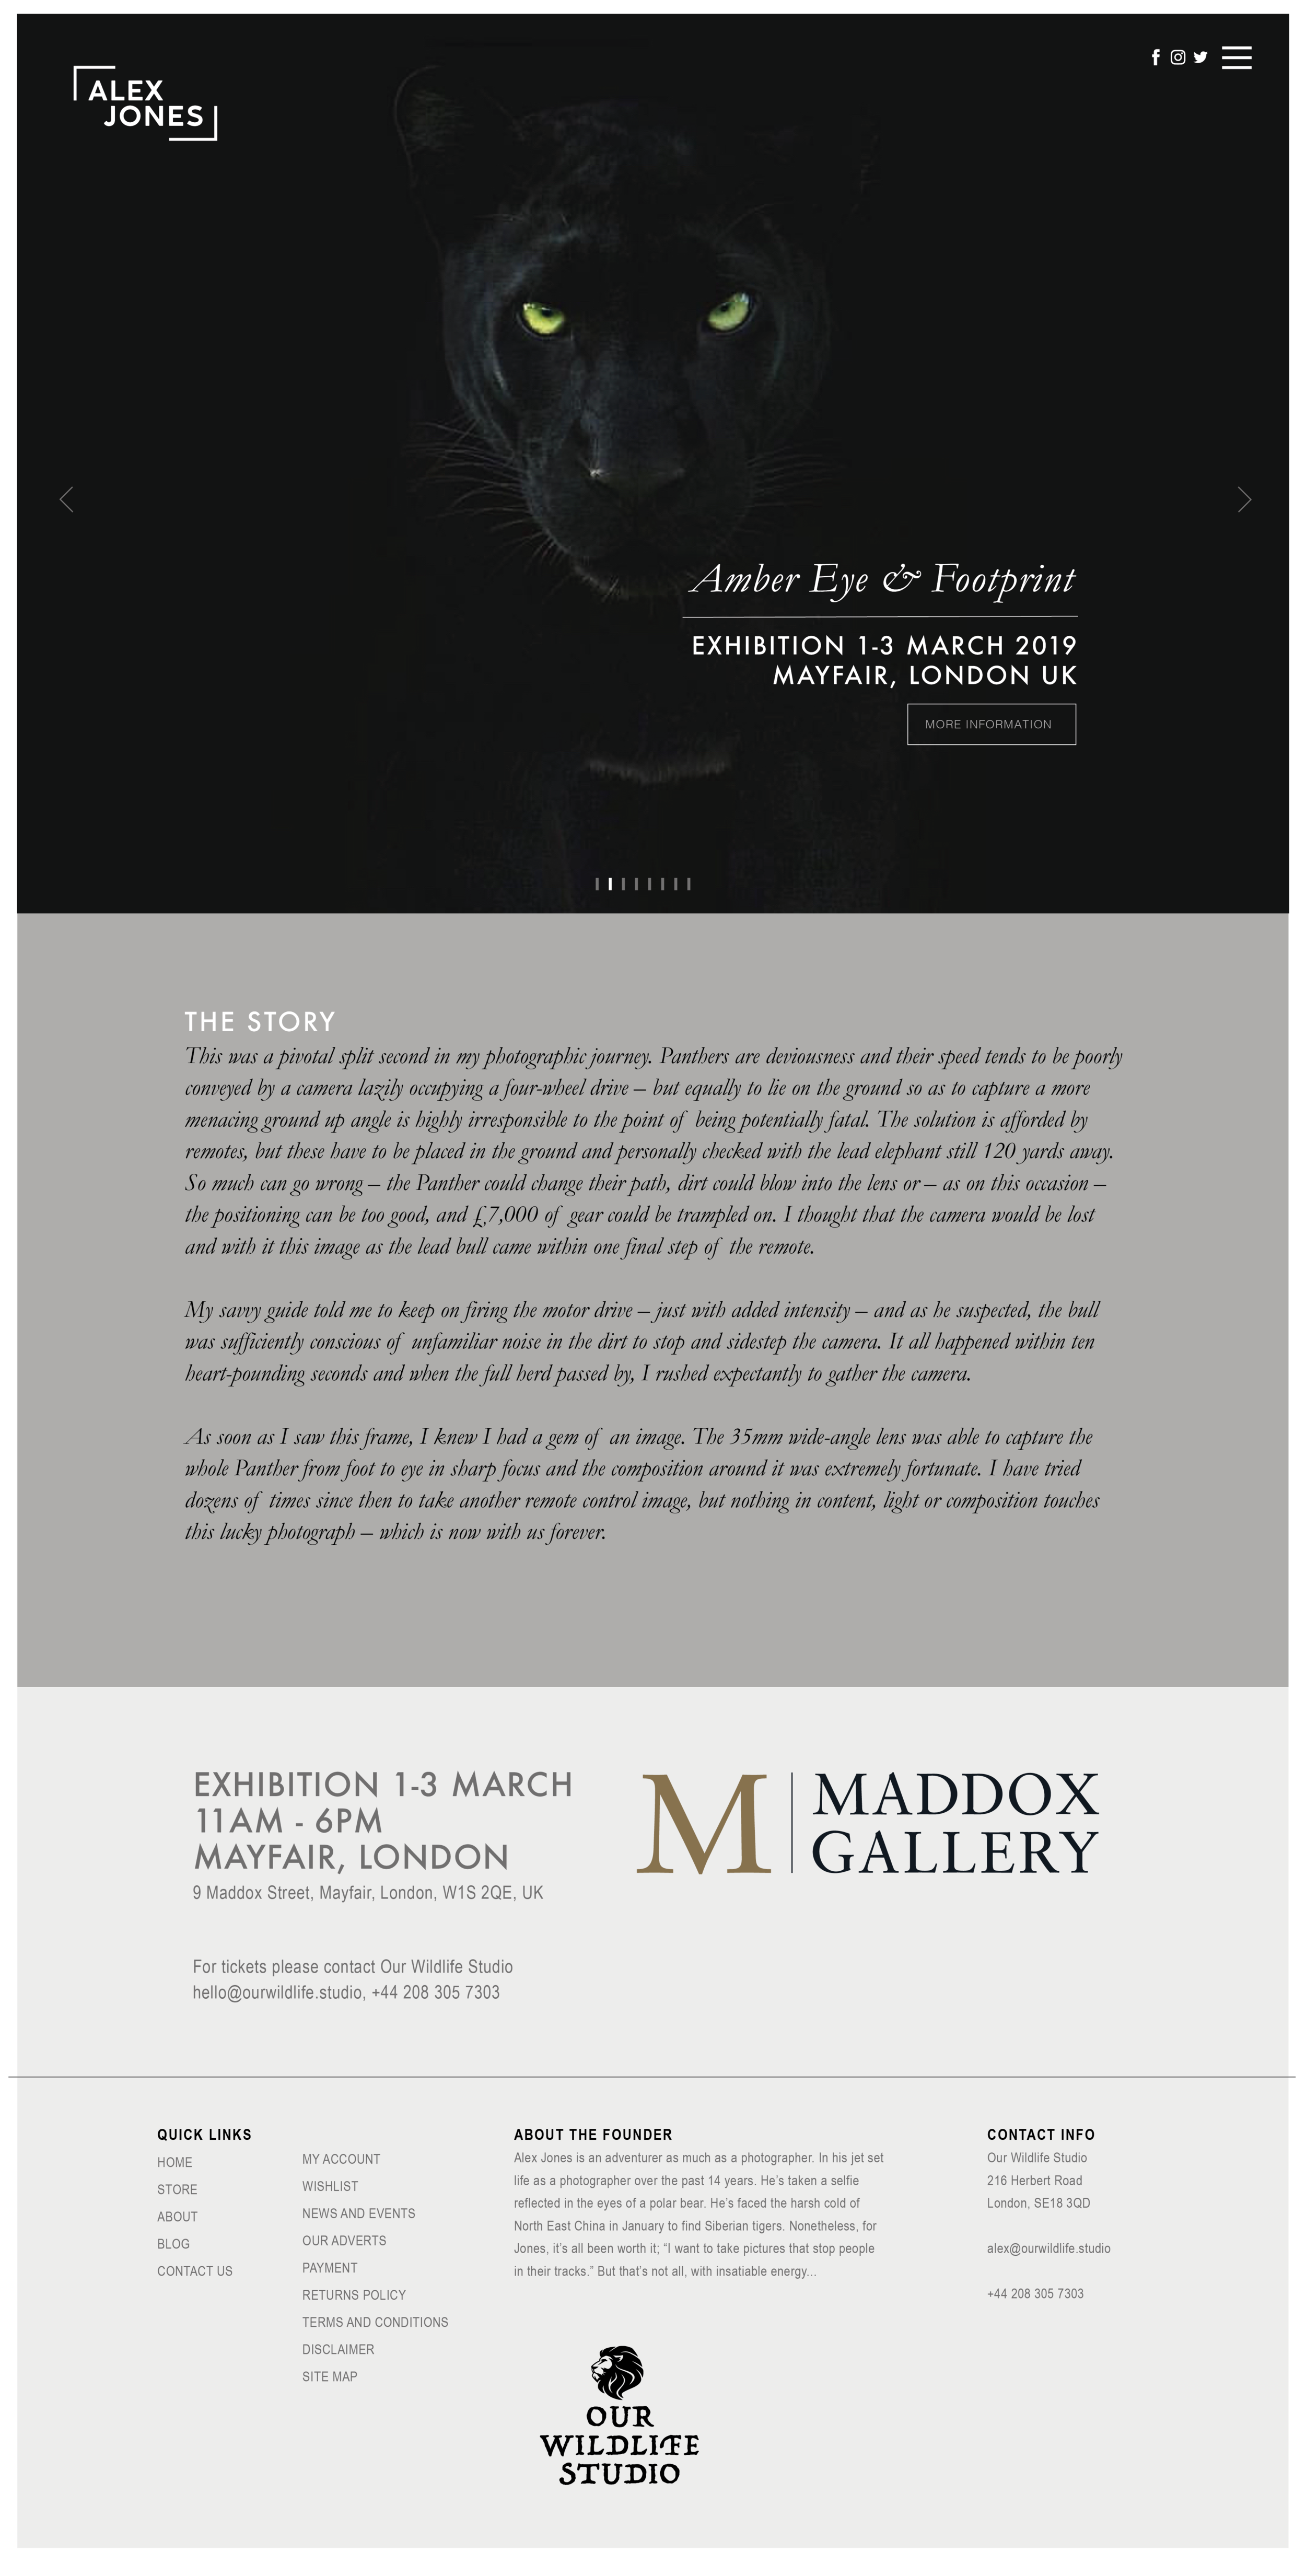 web_page_for_exhibition.png